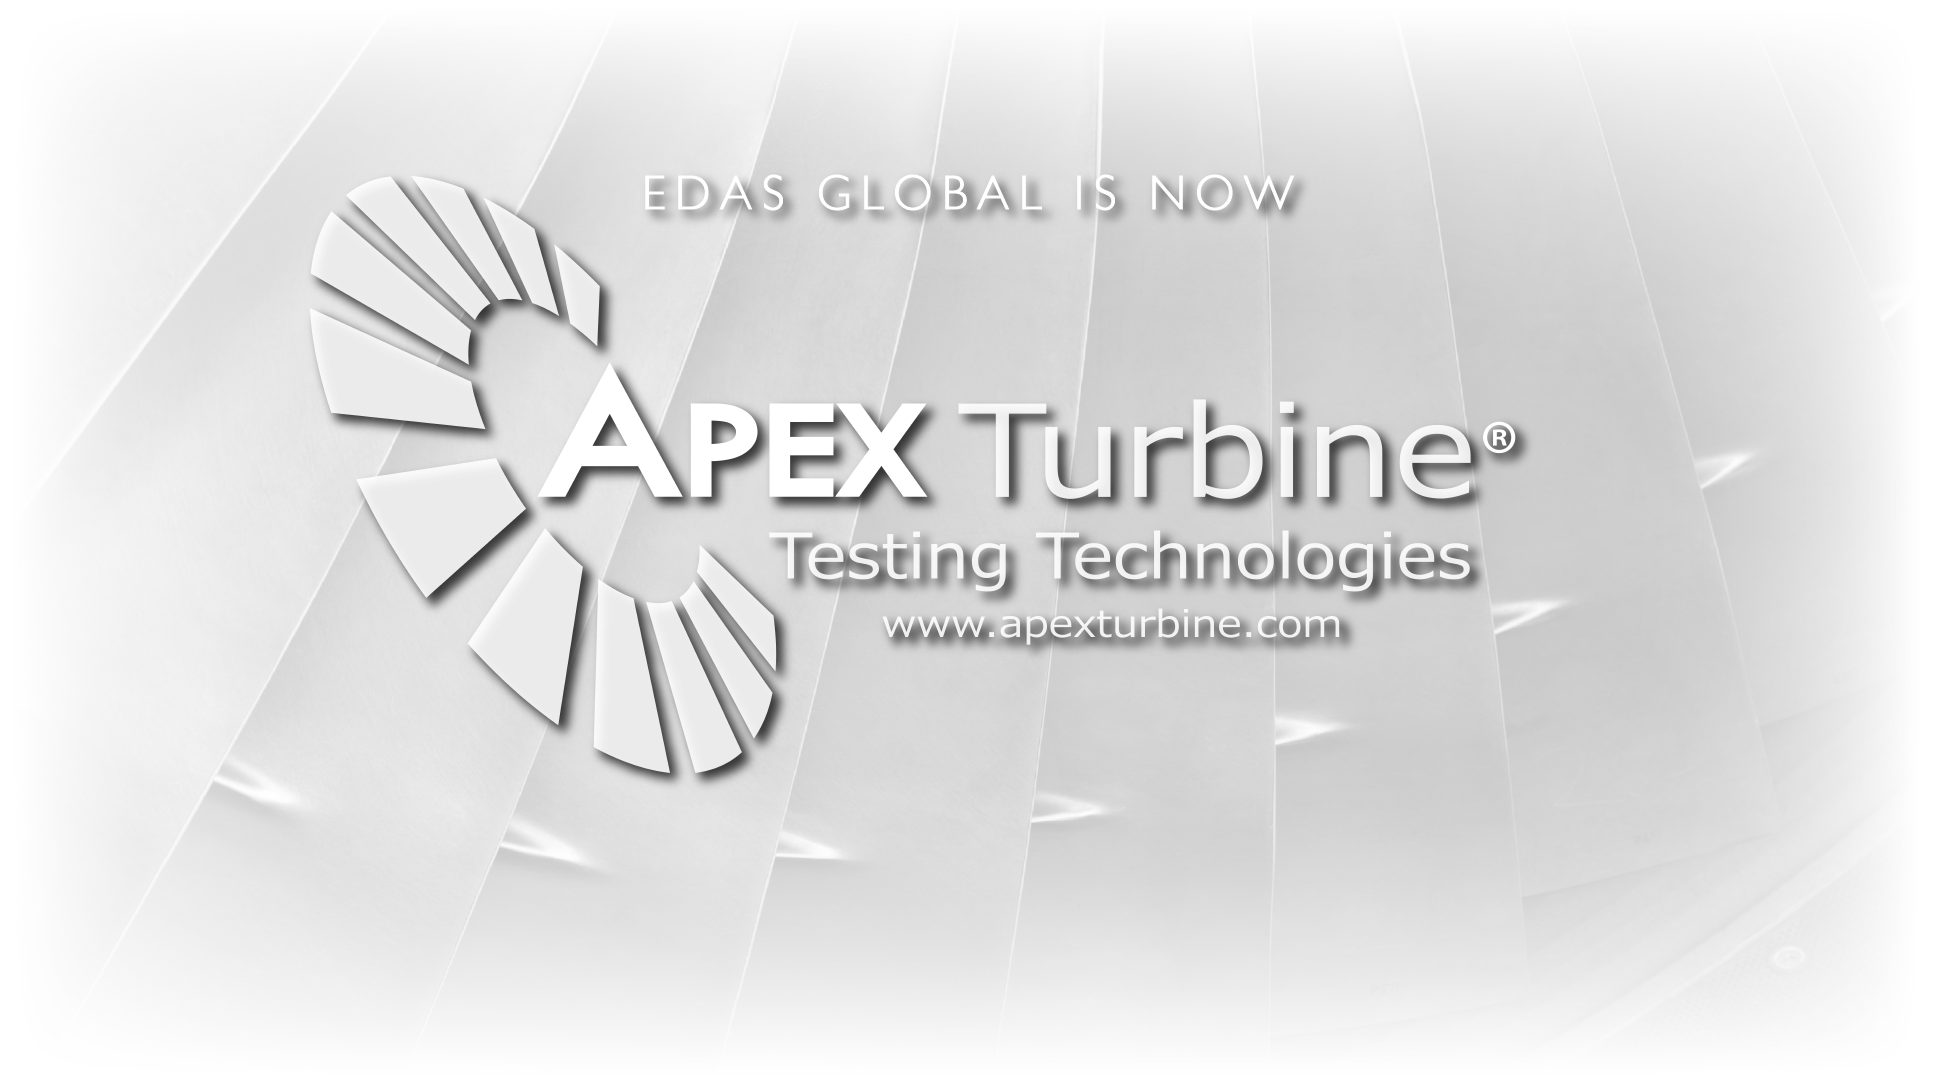 EDAS Global is now Apex Turbine